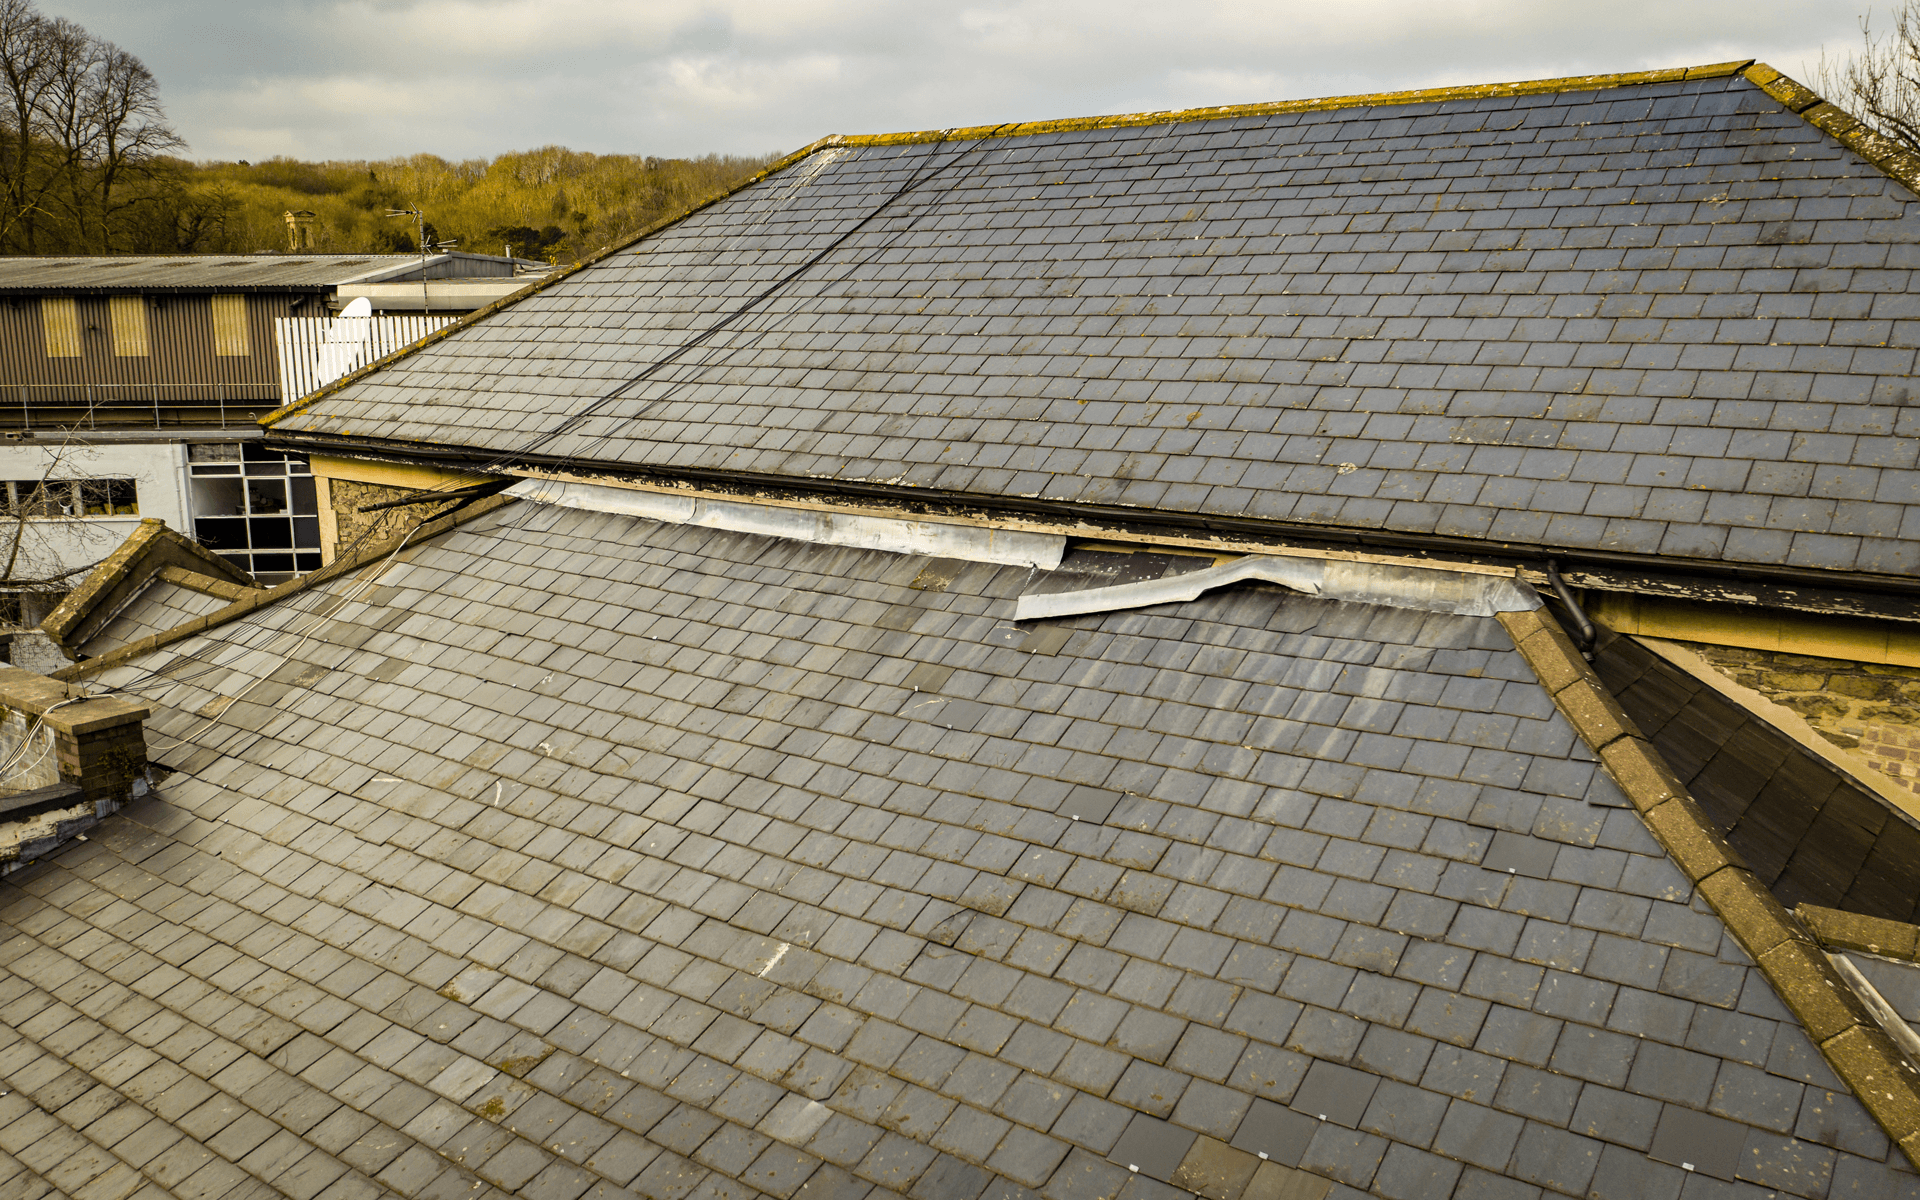 """Mavic 2 Pro"" aerial drone photo for a roof survey at ""Arnos Manor Hotel"" showing damage to the roof"